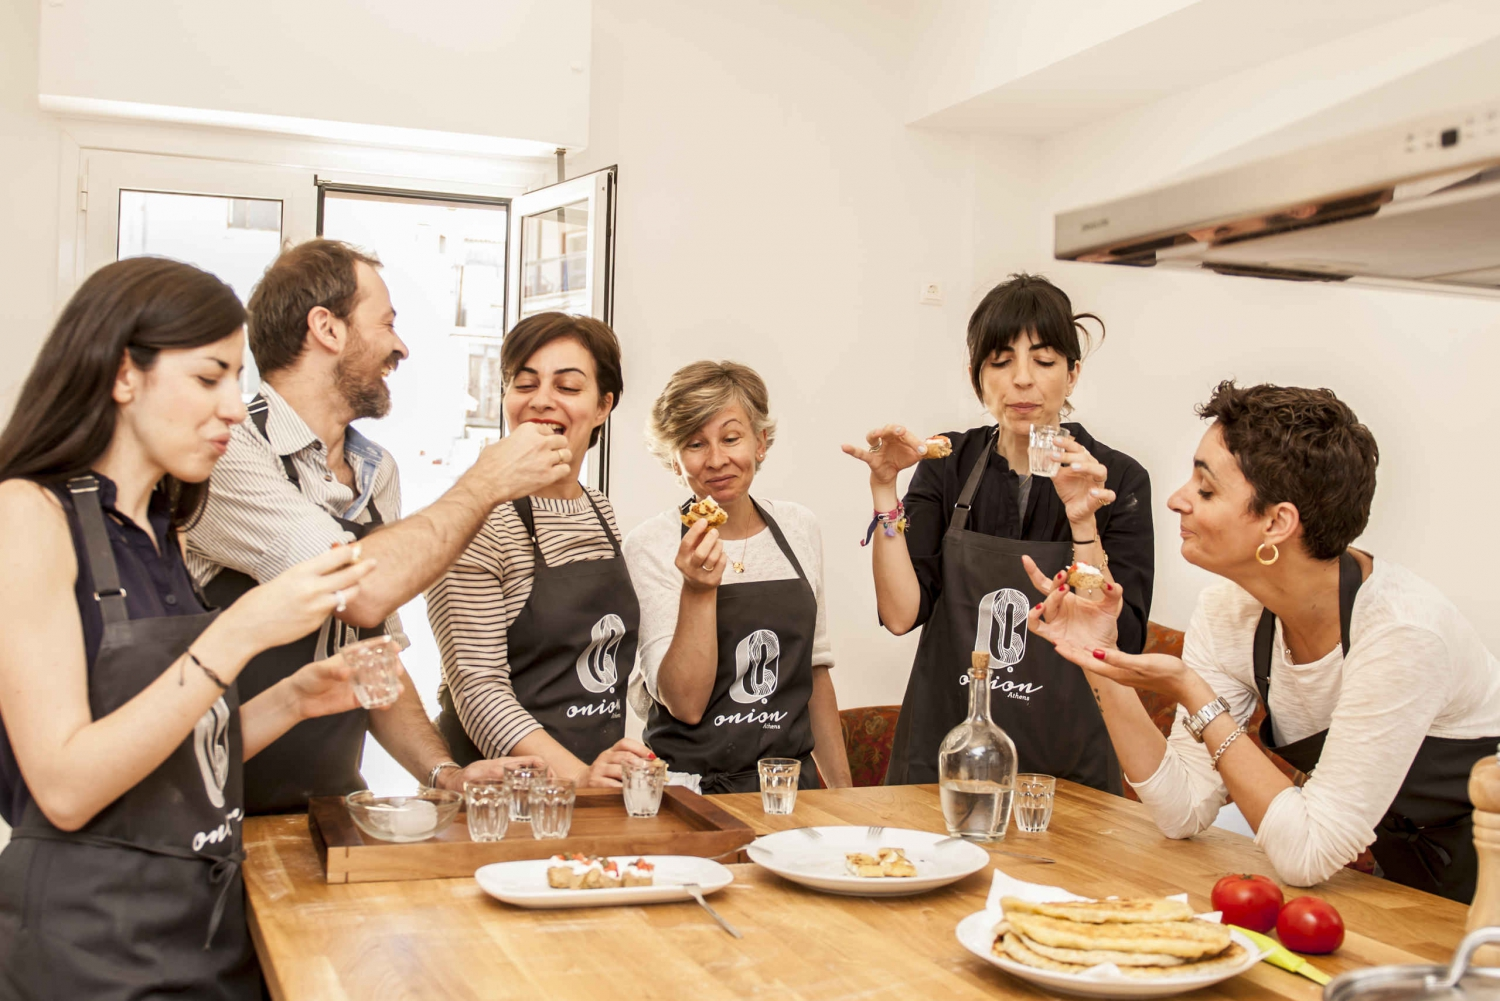 Half-Day Greek Cooking Class and Downtown Lunch